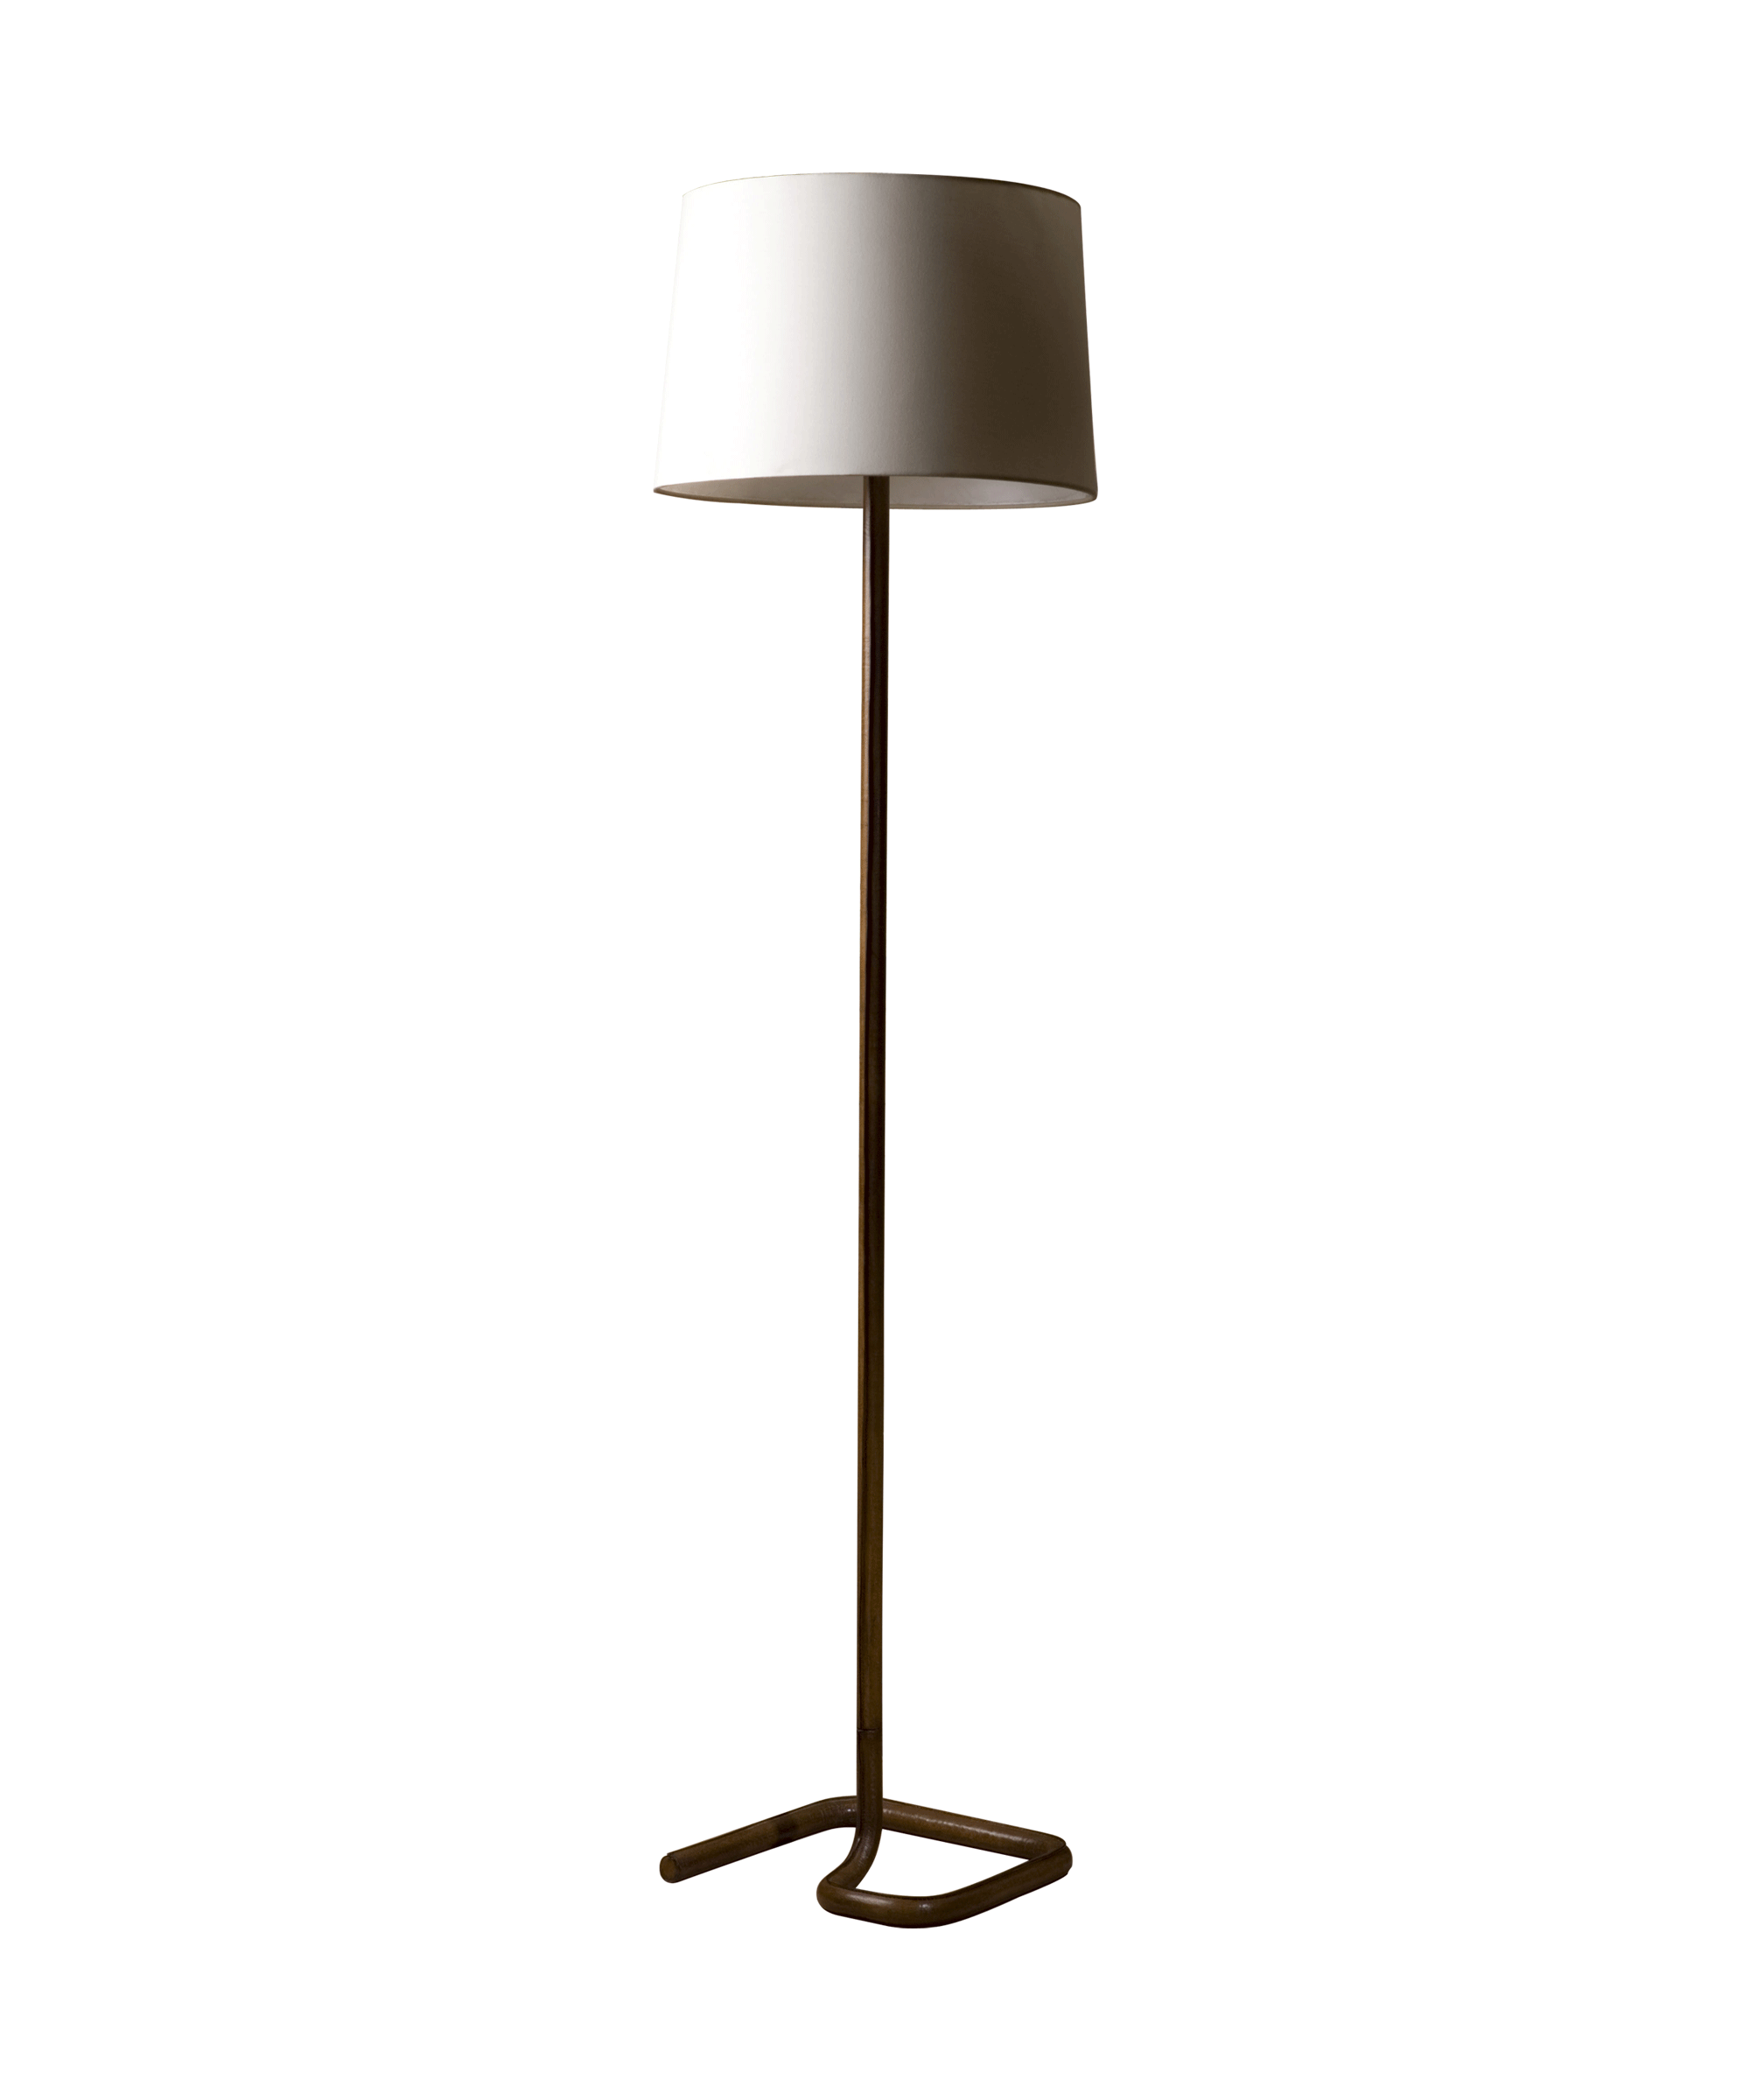 Standing Lamp Modern Railway Room Standing Lamp 01 Portsidecafé